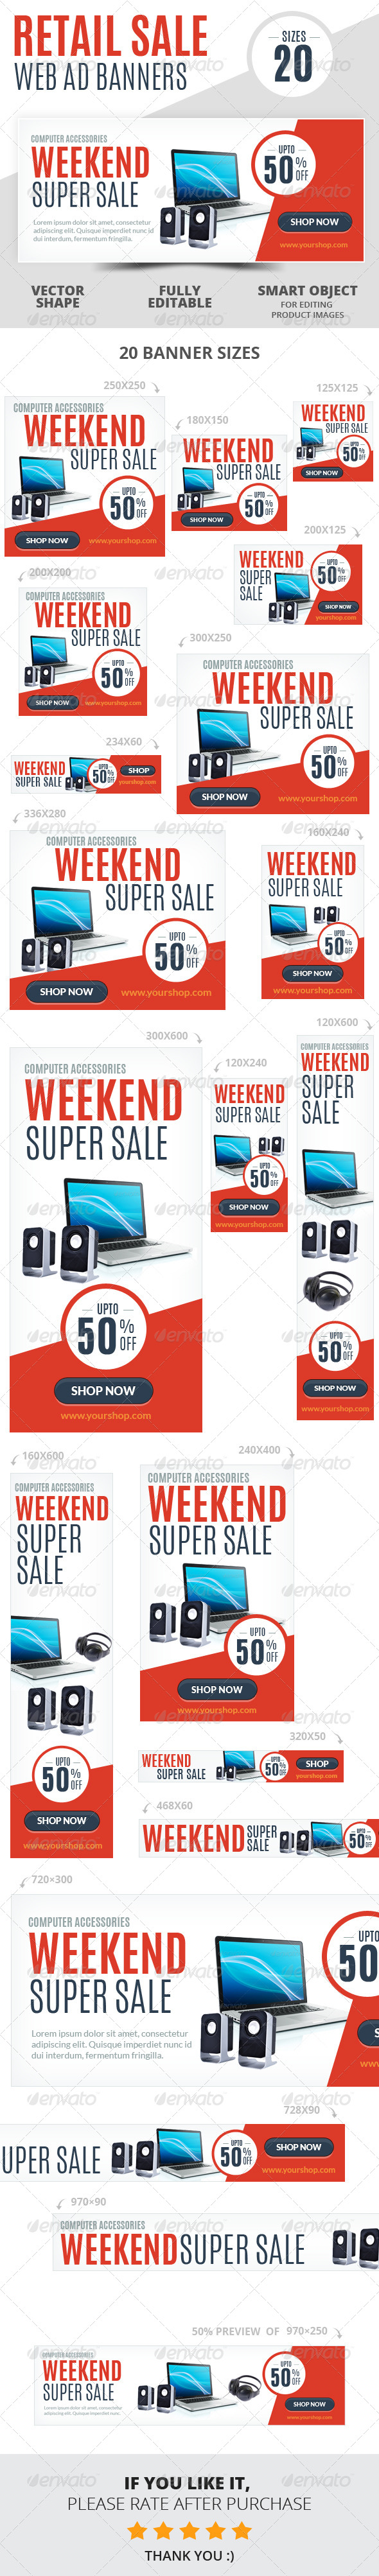 Weekend Super Sale Retail Web Ad Banners - Banners & Ads Web Elements